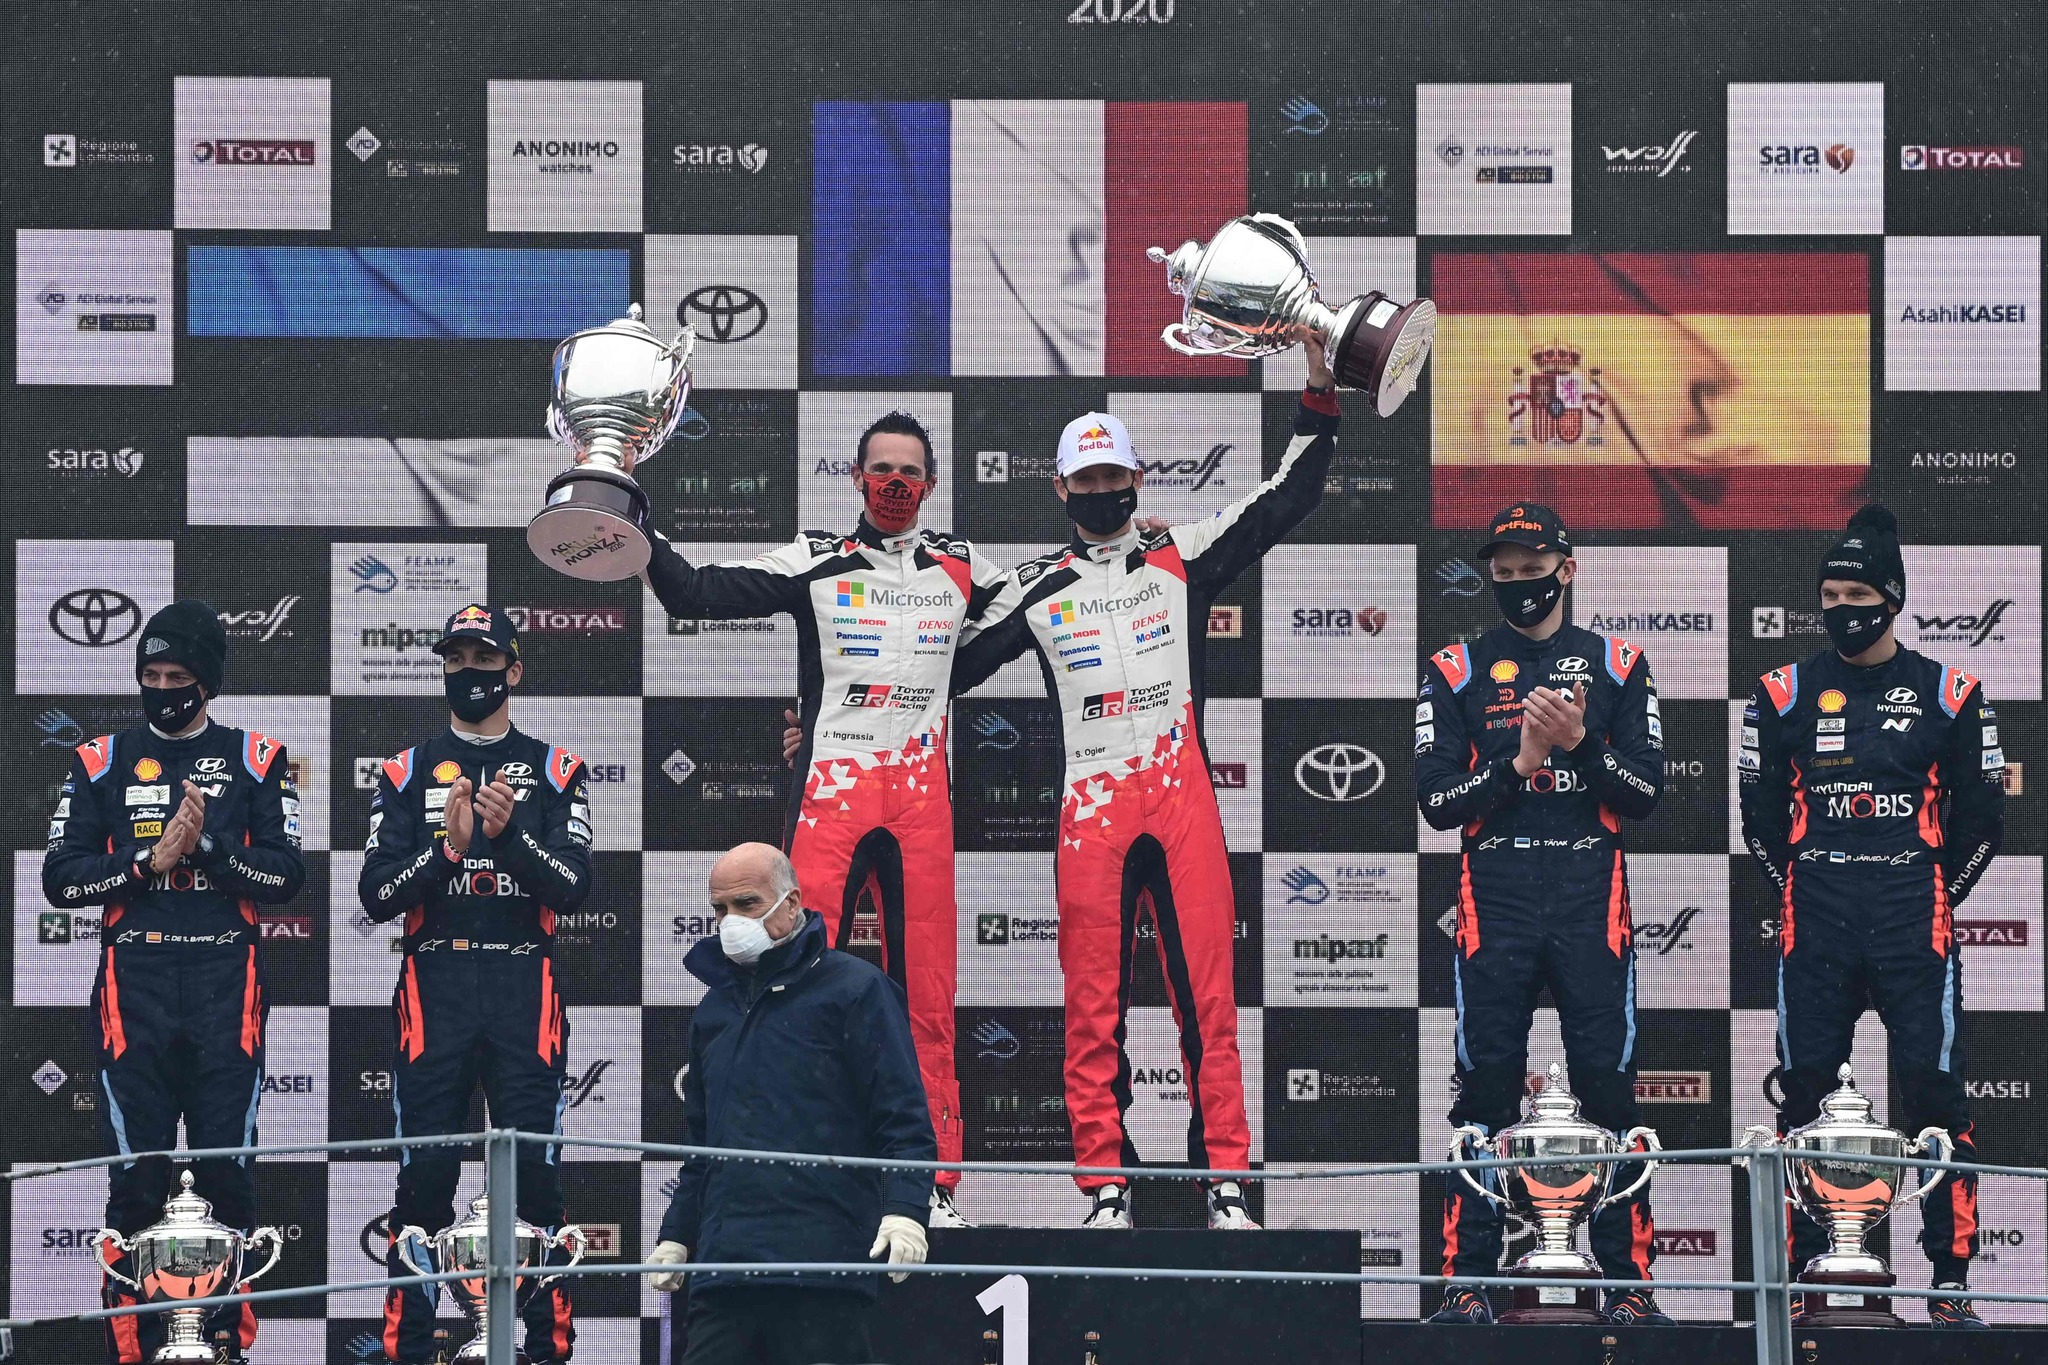 Winners French driver Sebastien lt;HIT gt;Ogier lt;/HIT gt; and his co-driver Julien Ingrassia (C), second-placed Estonian driver Ott Tanak and co-driver Martin Jarveoja and third-placed Spanish driver Dani Sordo and co-driver Carlos Del Barrio (R) celebrate on the podium after the FIA World Rally Championship at the Autodromo Nazionale circuit in Monza on December 6, 2020. (Photo by MIGUEL MEDINA / AFP)